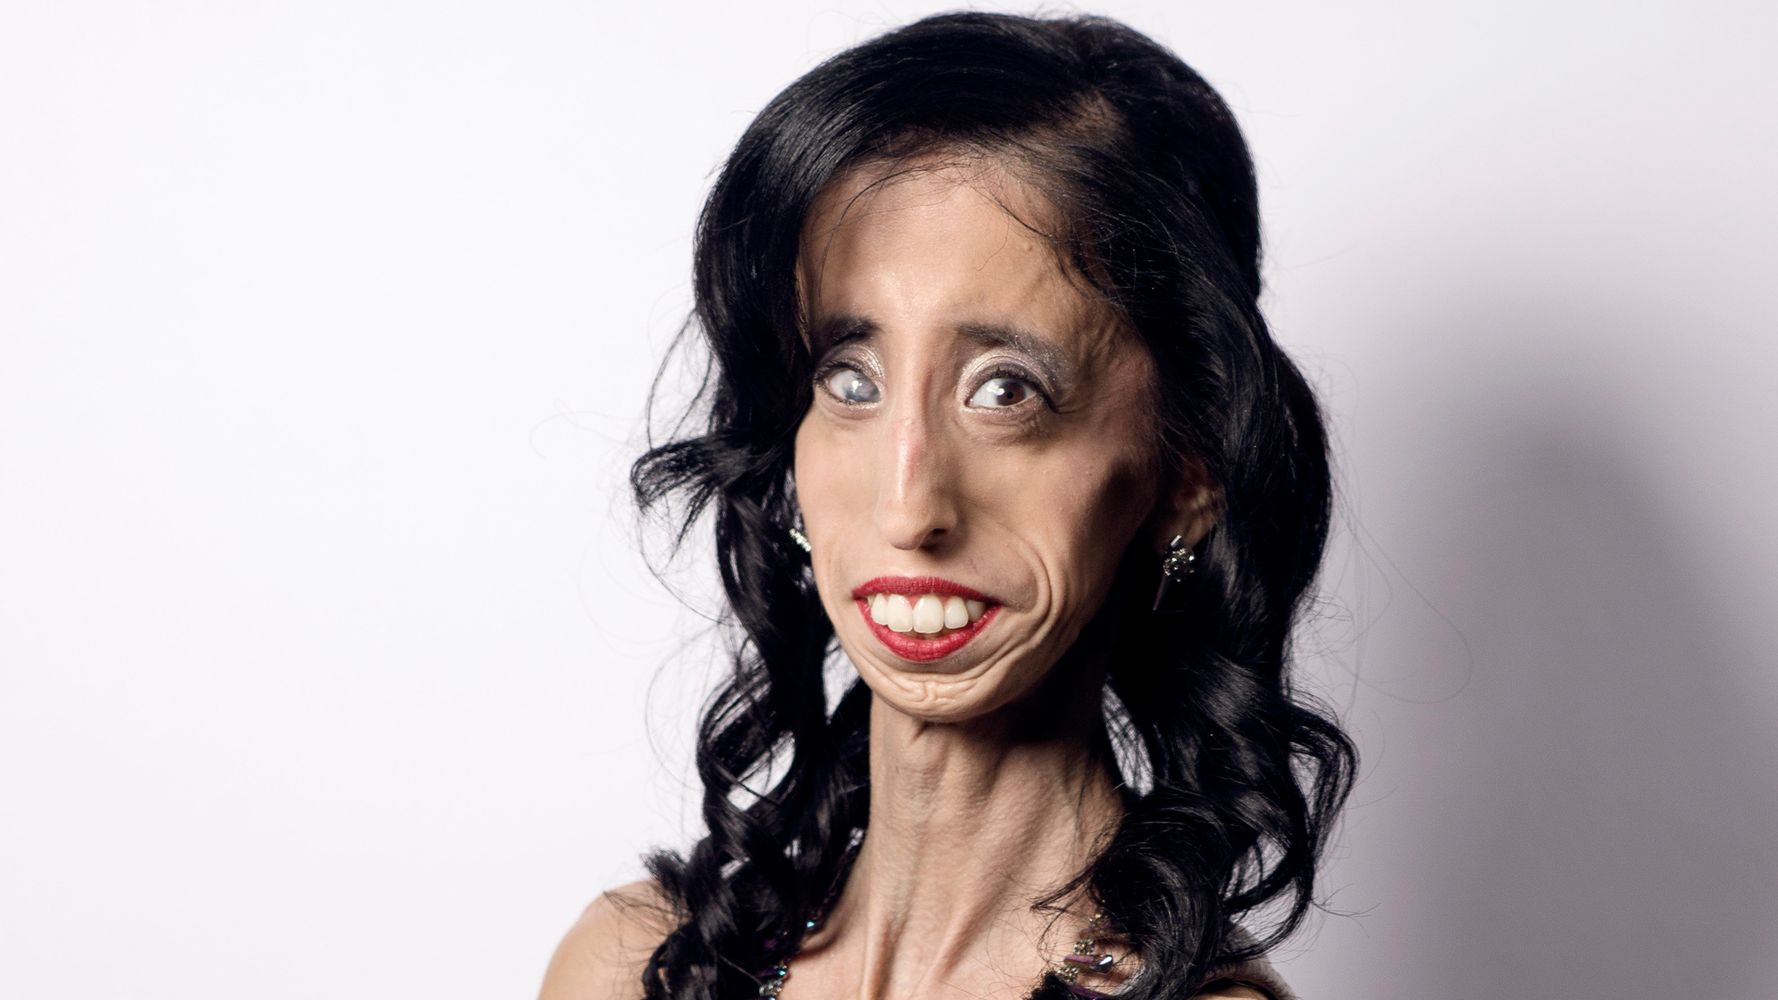 How Being Called The 'World's Ugliest Woman' Transformed Her